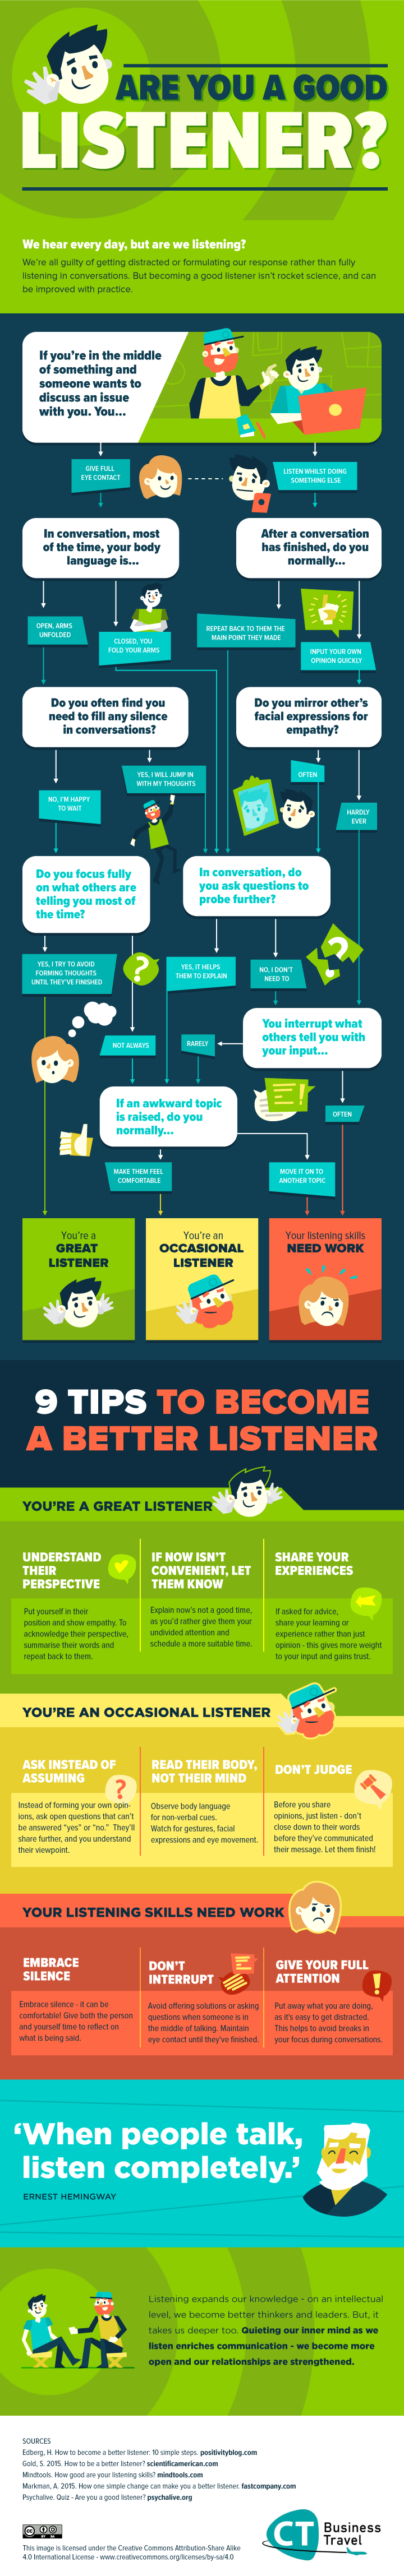 good-listener-infographic.png